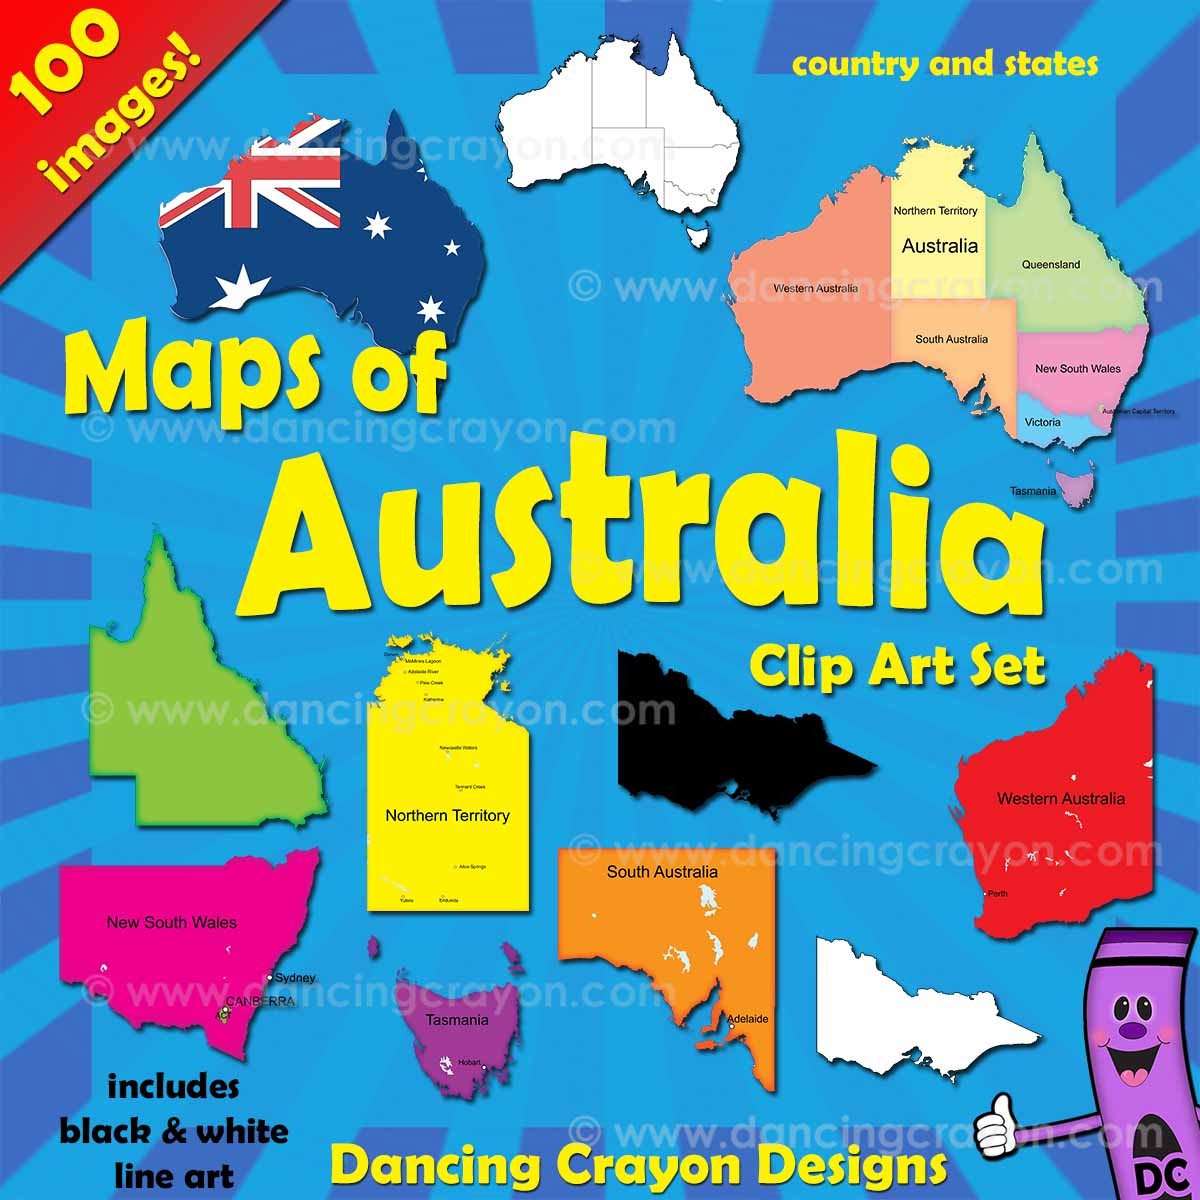 Free Clipart Map Of Australia   You can see a map of many places ...